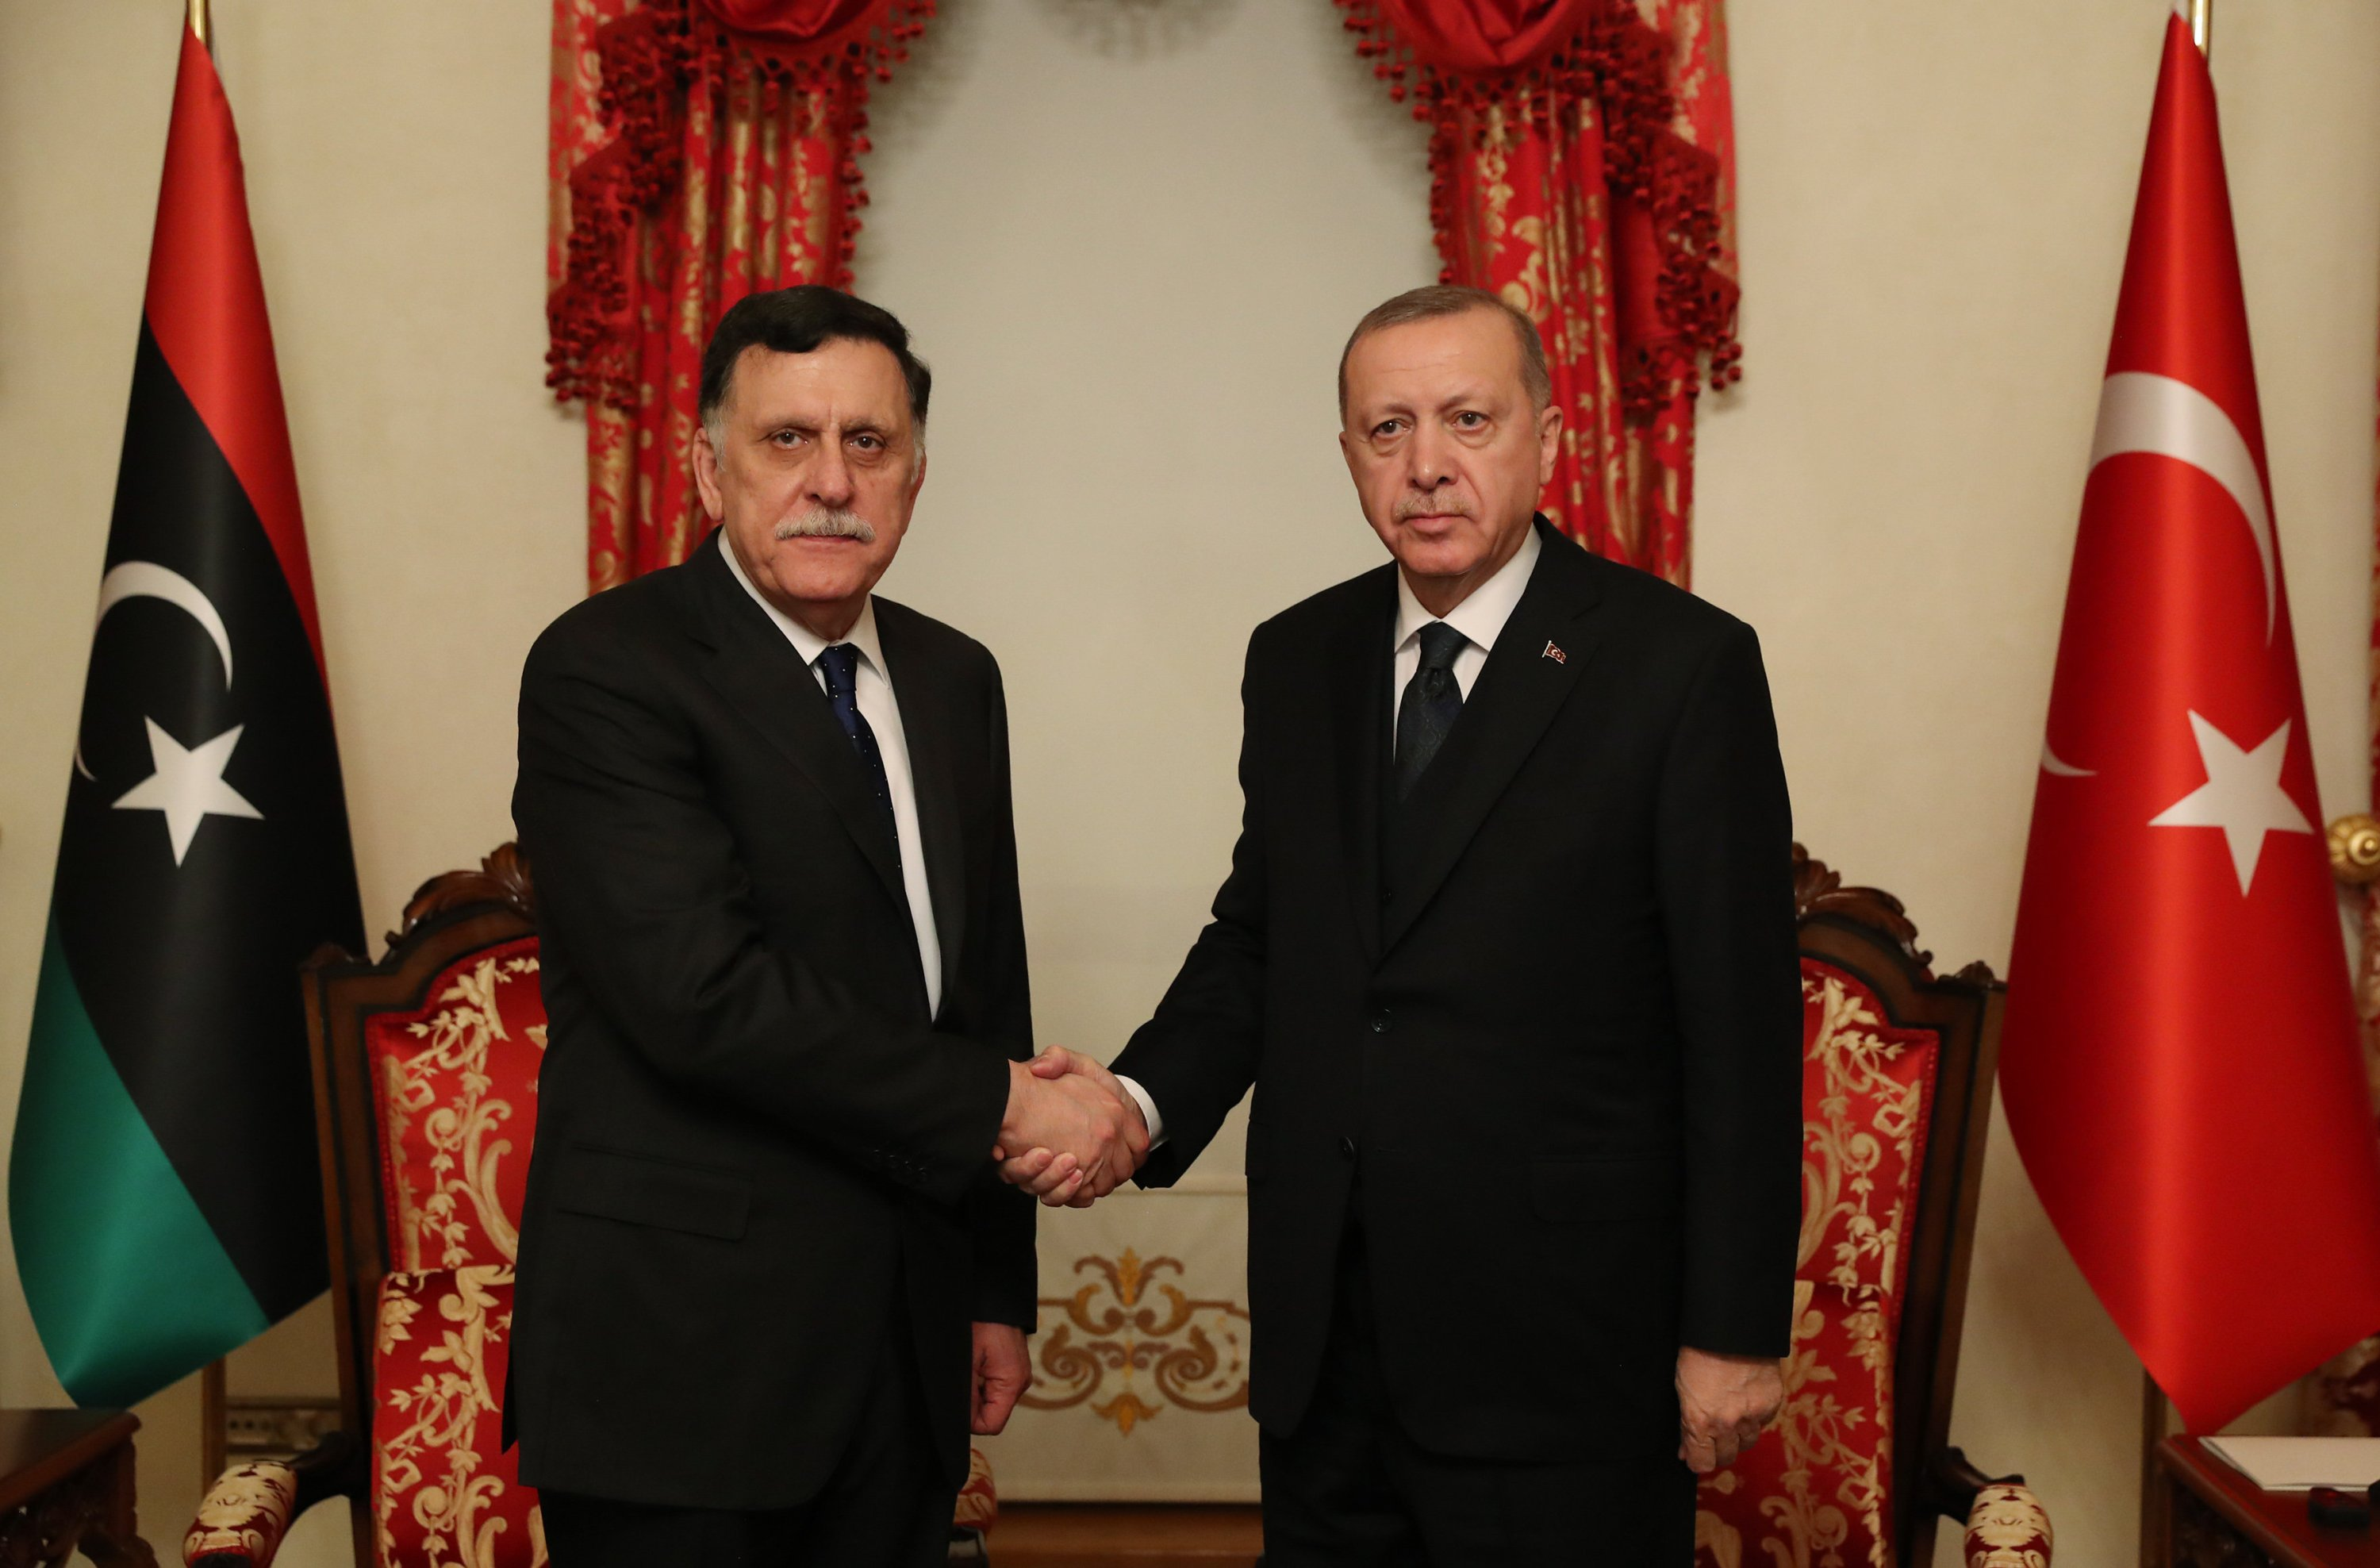 President Recep Tayyip Erdoğan shakes hands with the head of the Libya's GNA Fayez al-Sarraj during latter's visit to Istanbul, Feb. 21, 2020. (AA)